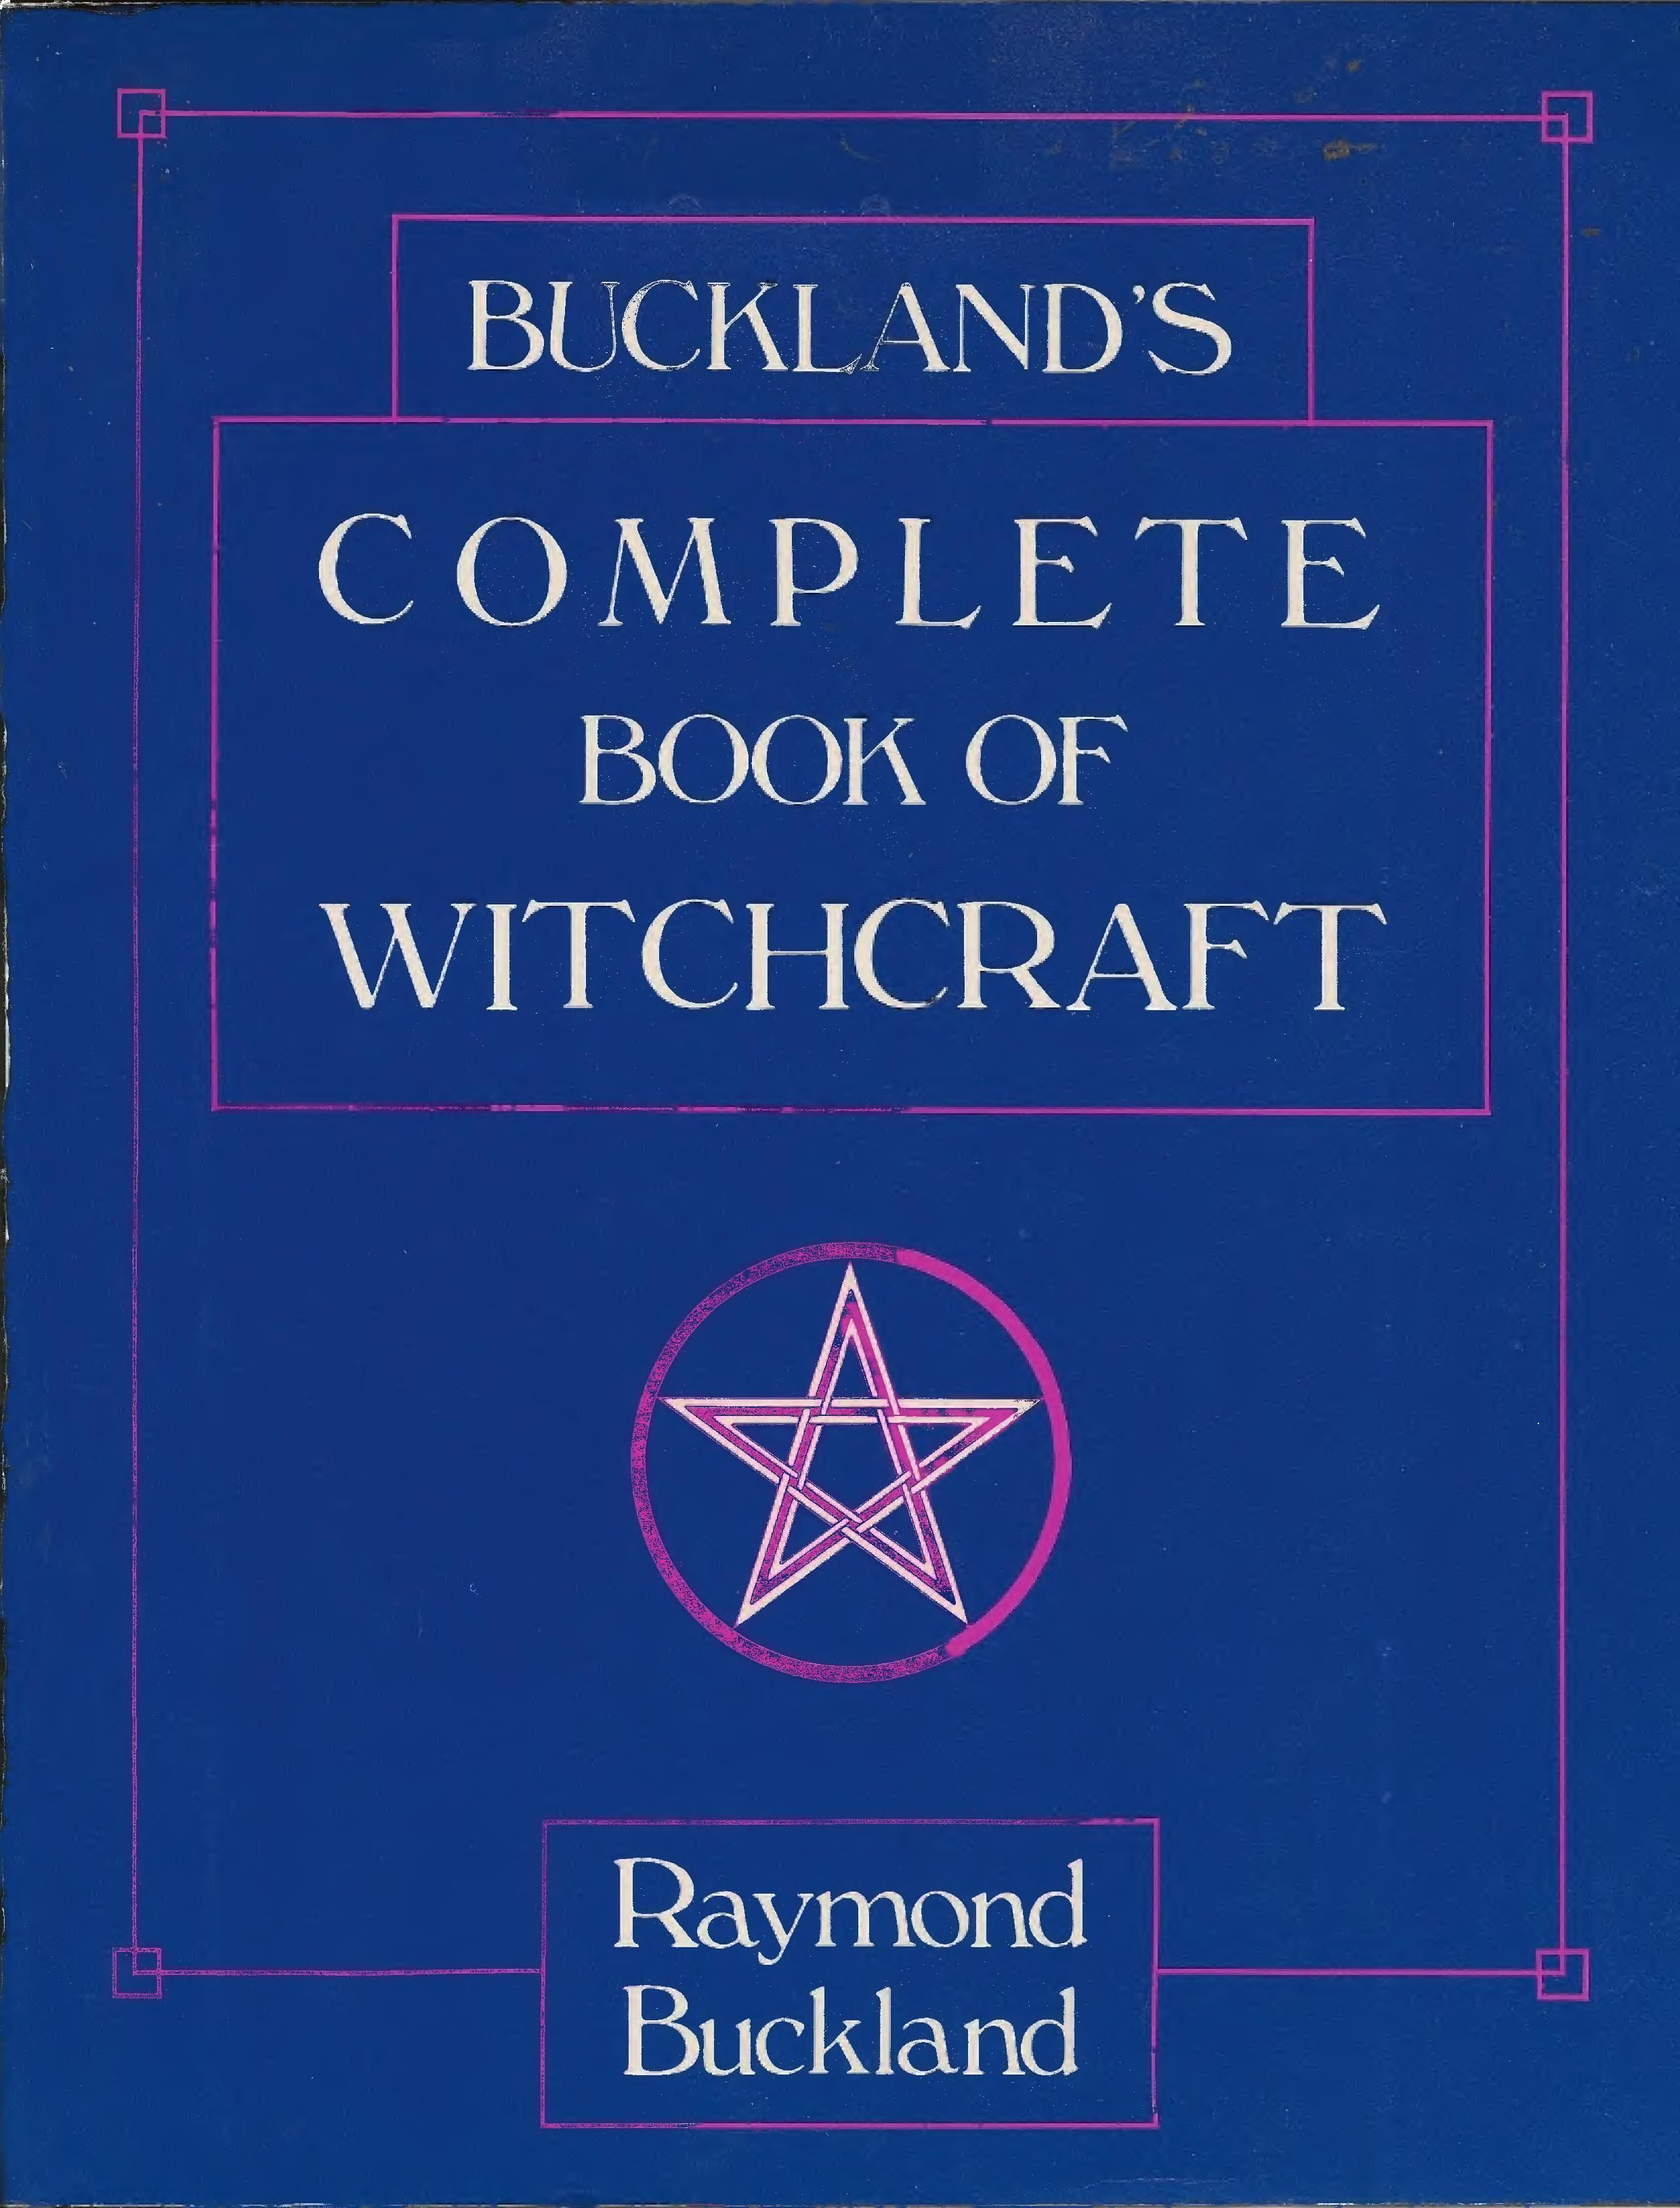 Bucklands complete book of witchcraft readable on the